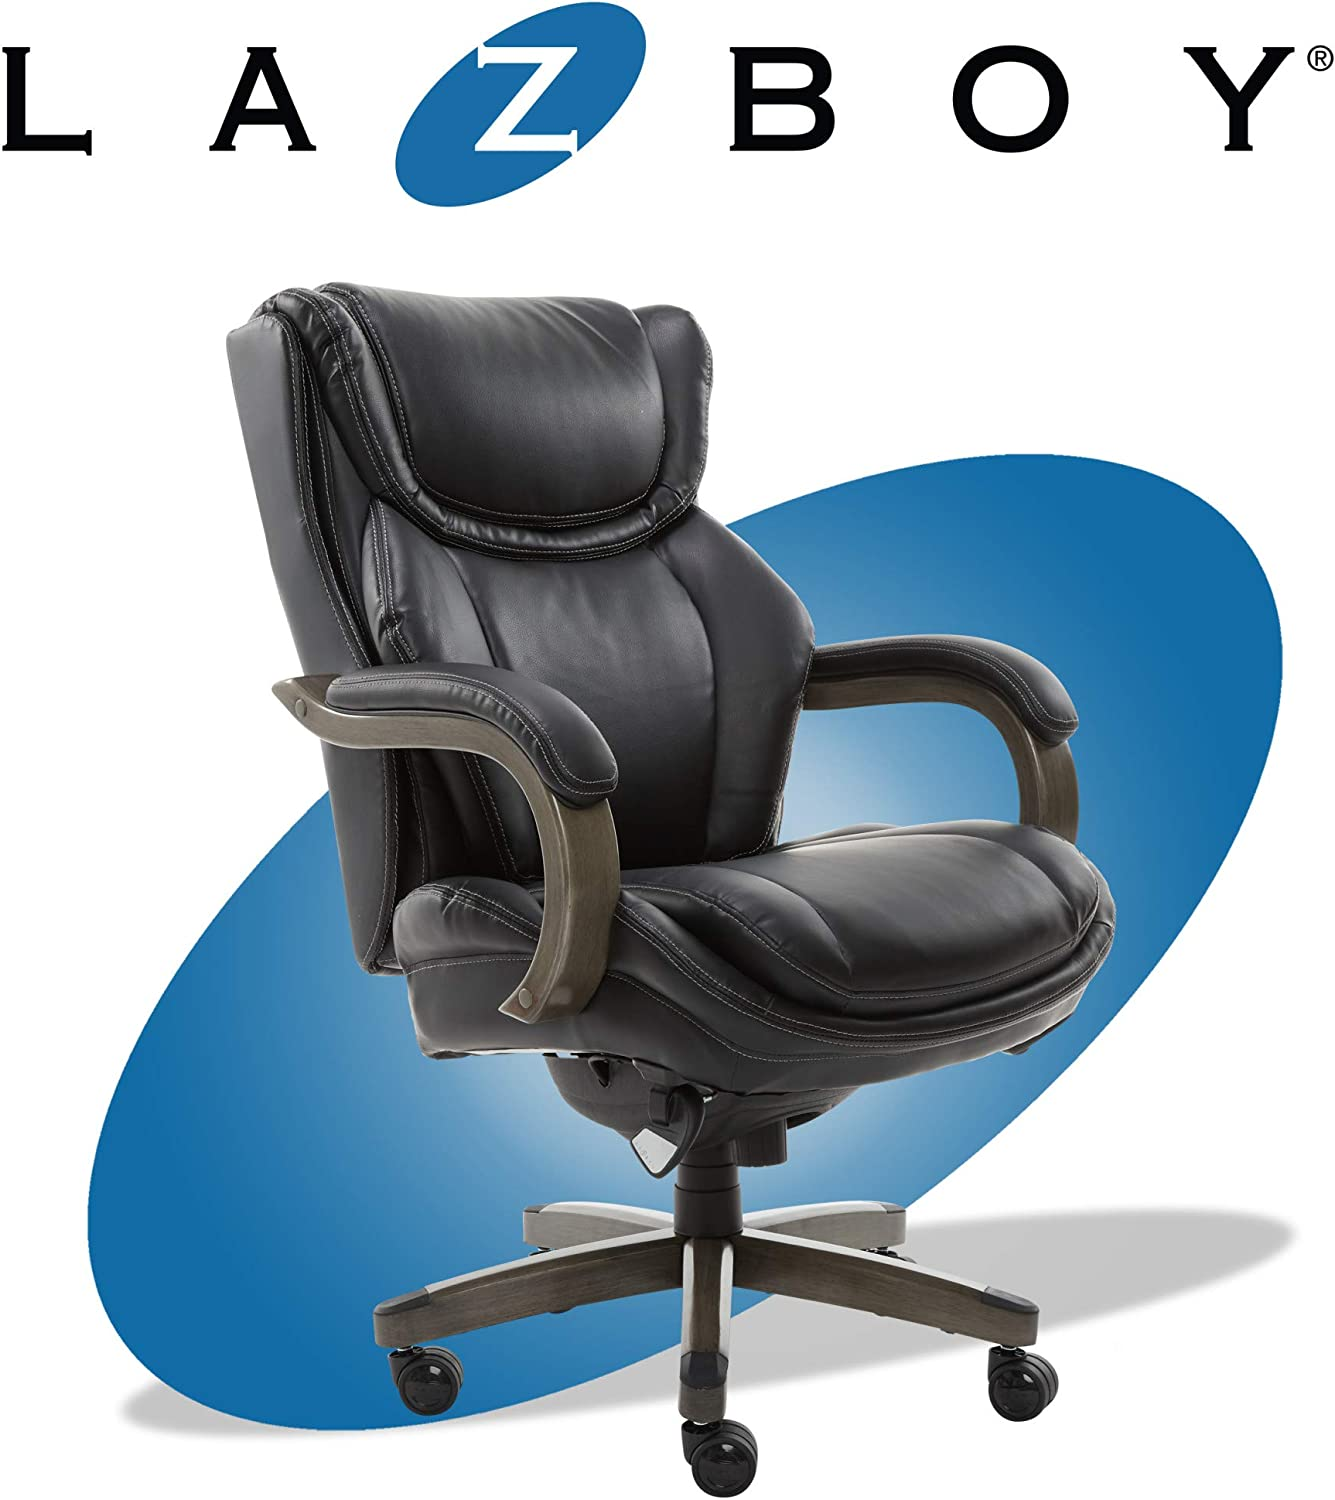 LaZBoy Big & Tall Executive Office Comfort Core Cushions, Ergonomic  High-Back Chair with Solid Wood Arms, Bonded Leather, Black